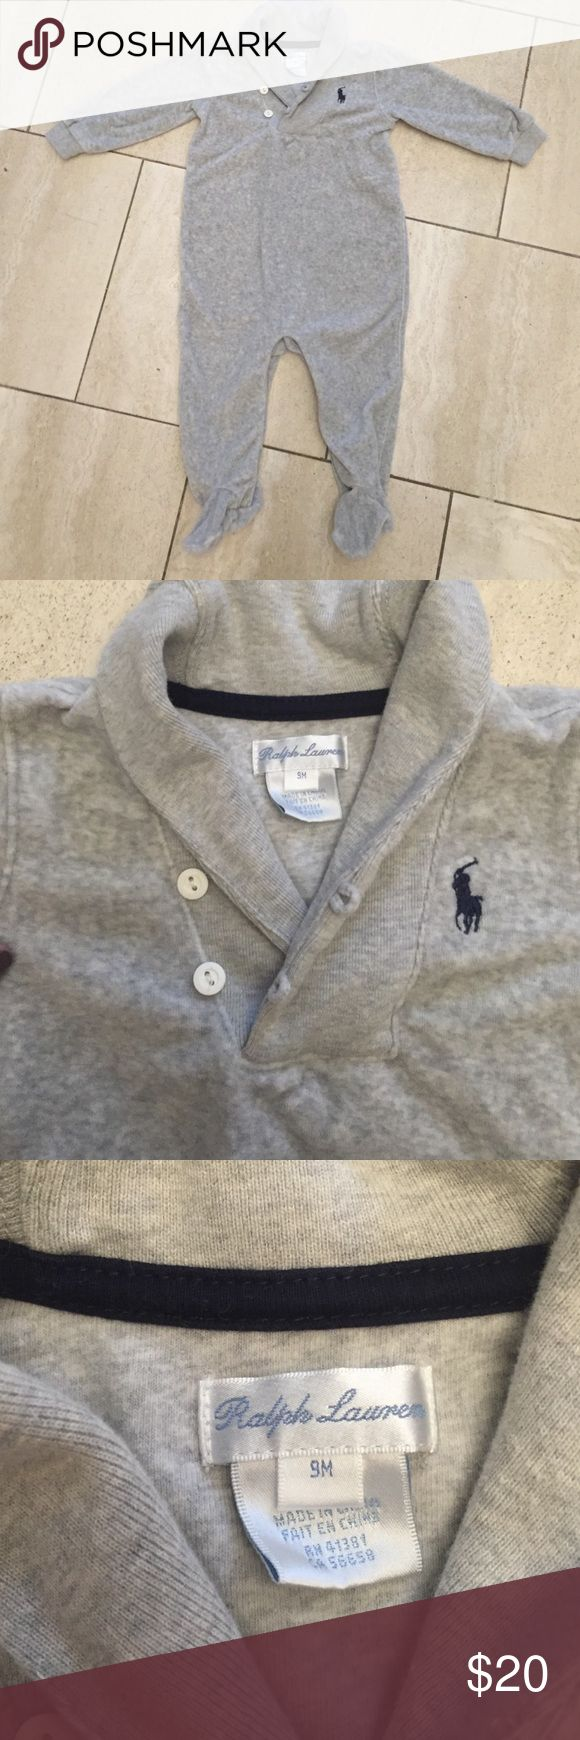 Ralph Lauren Outfit NWOT.  Super soft and cozy Ralph Lauren outfit.  Grey.  9 months. Ralph Lauren One Pieces